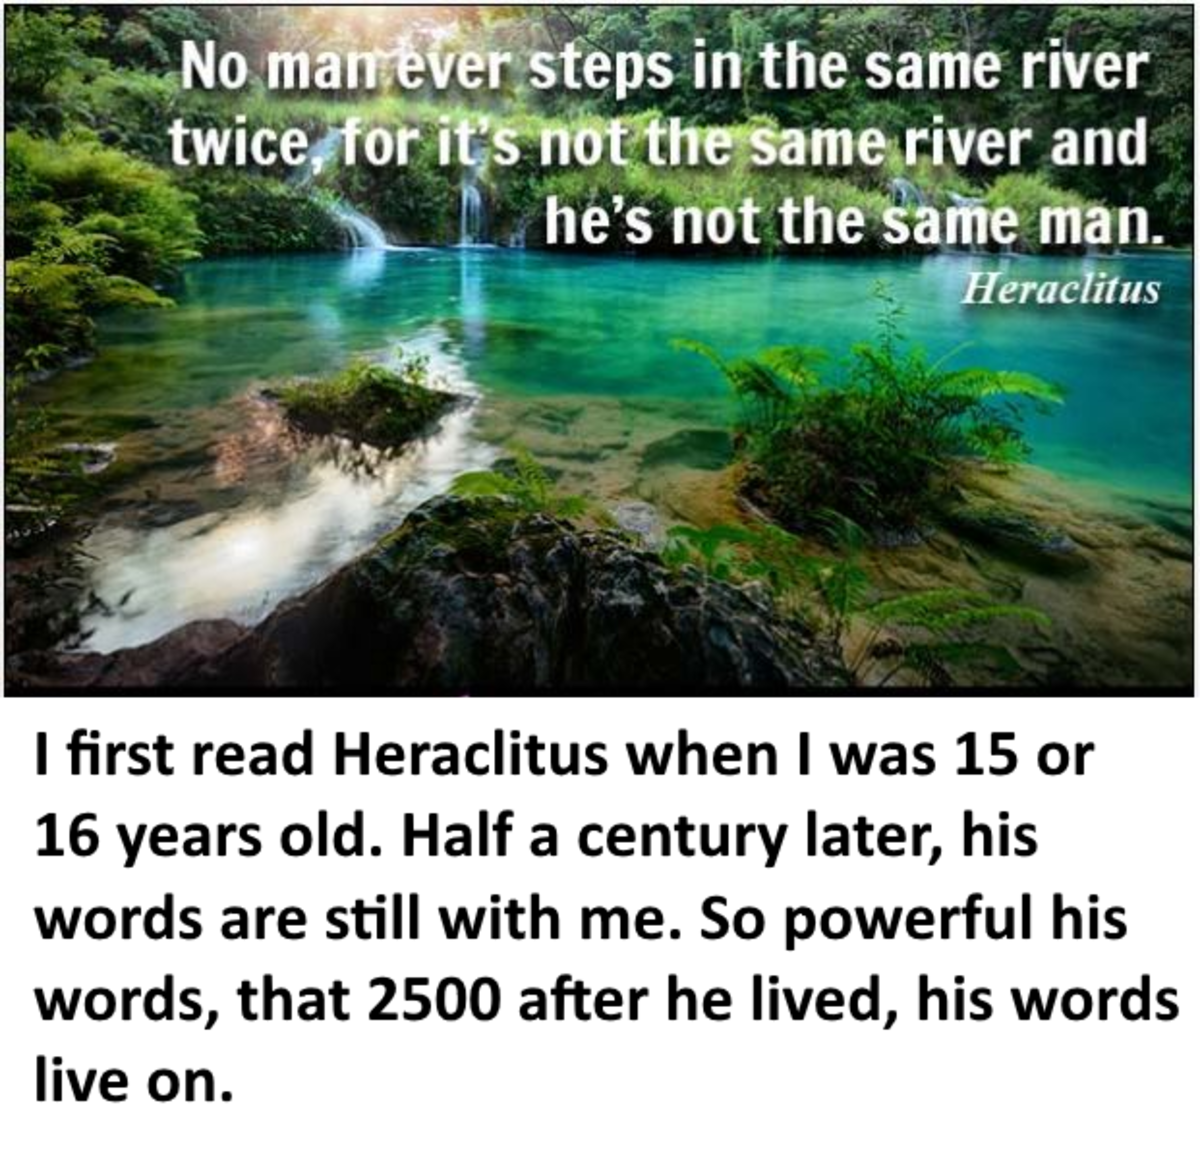 Insightful words from Greek philosopher Heraclitus.